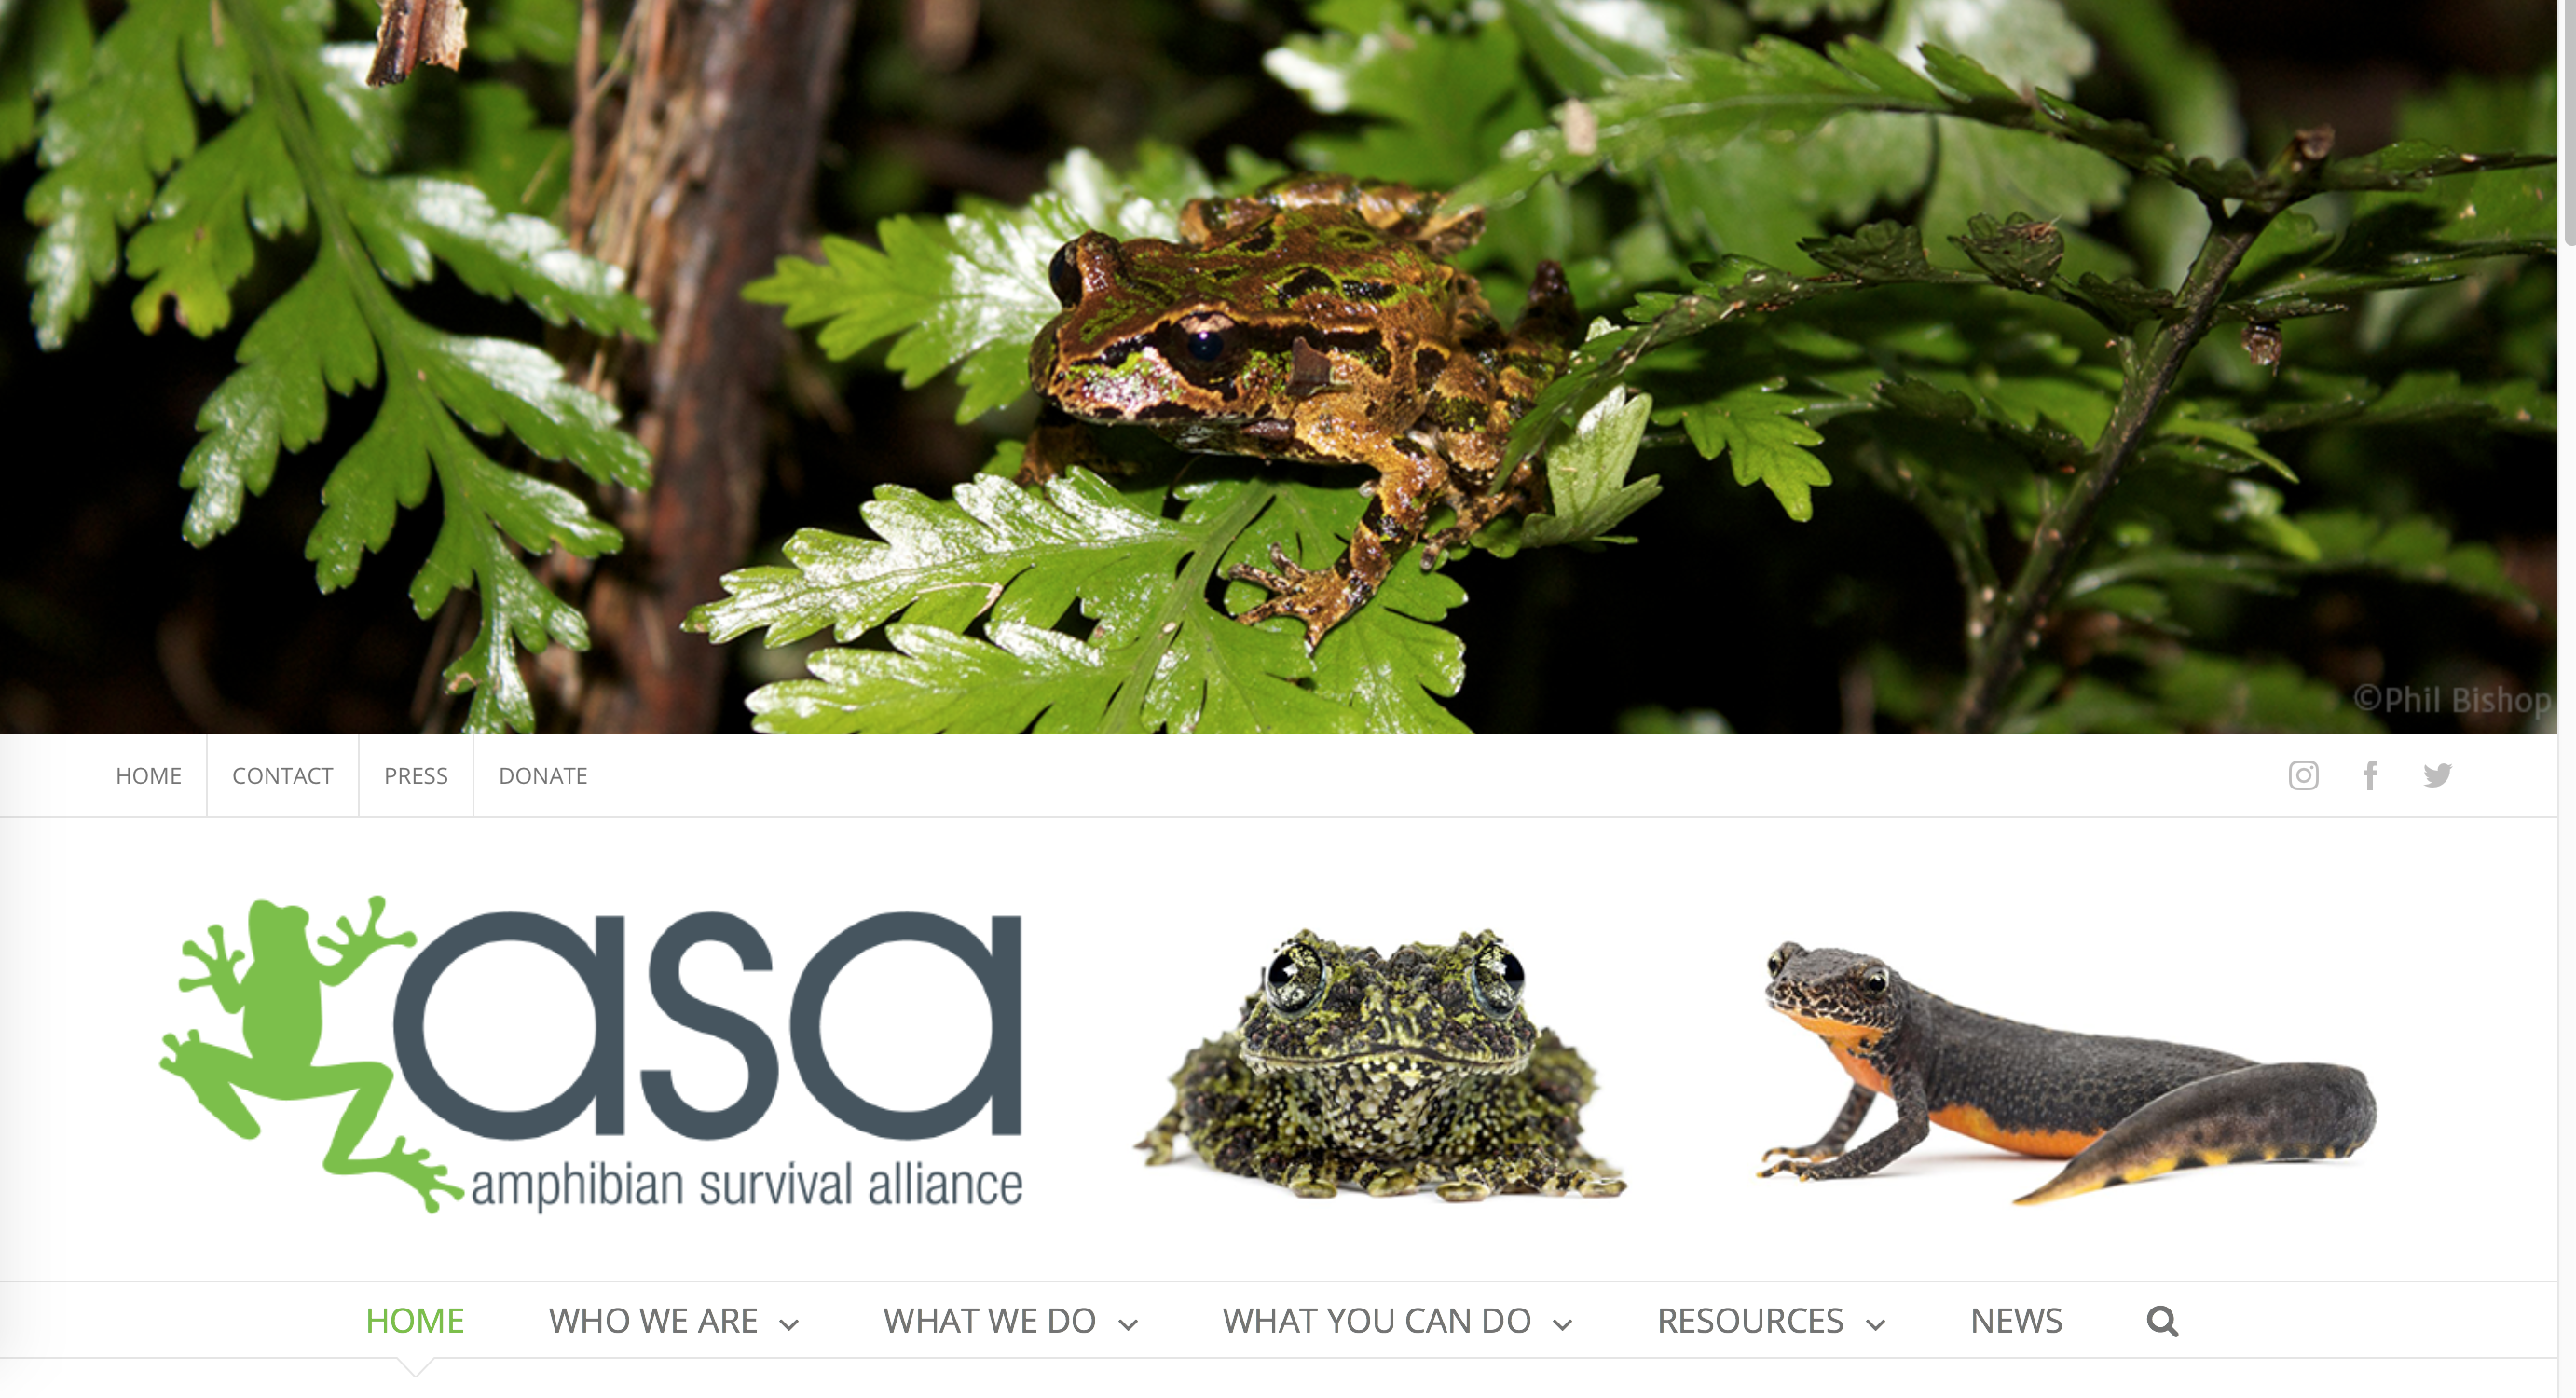 https://www.amphibians.org/wp-content/uploads/2019/05/Screen-Shot-2019-05-09-at-10.11.40-AM.png